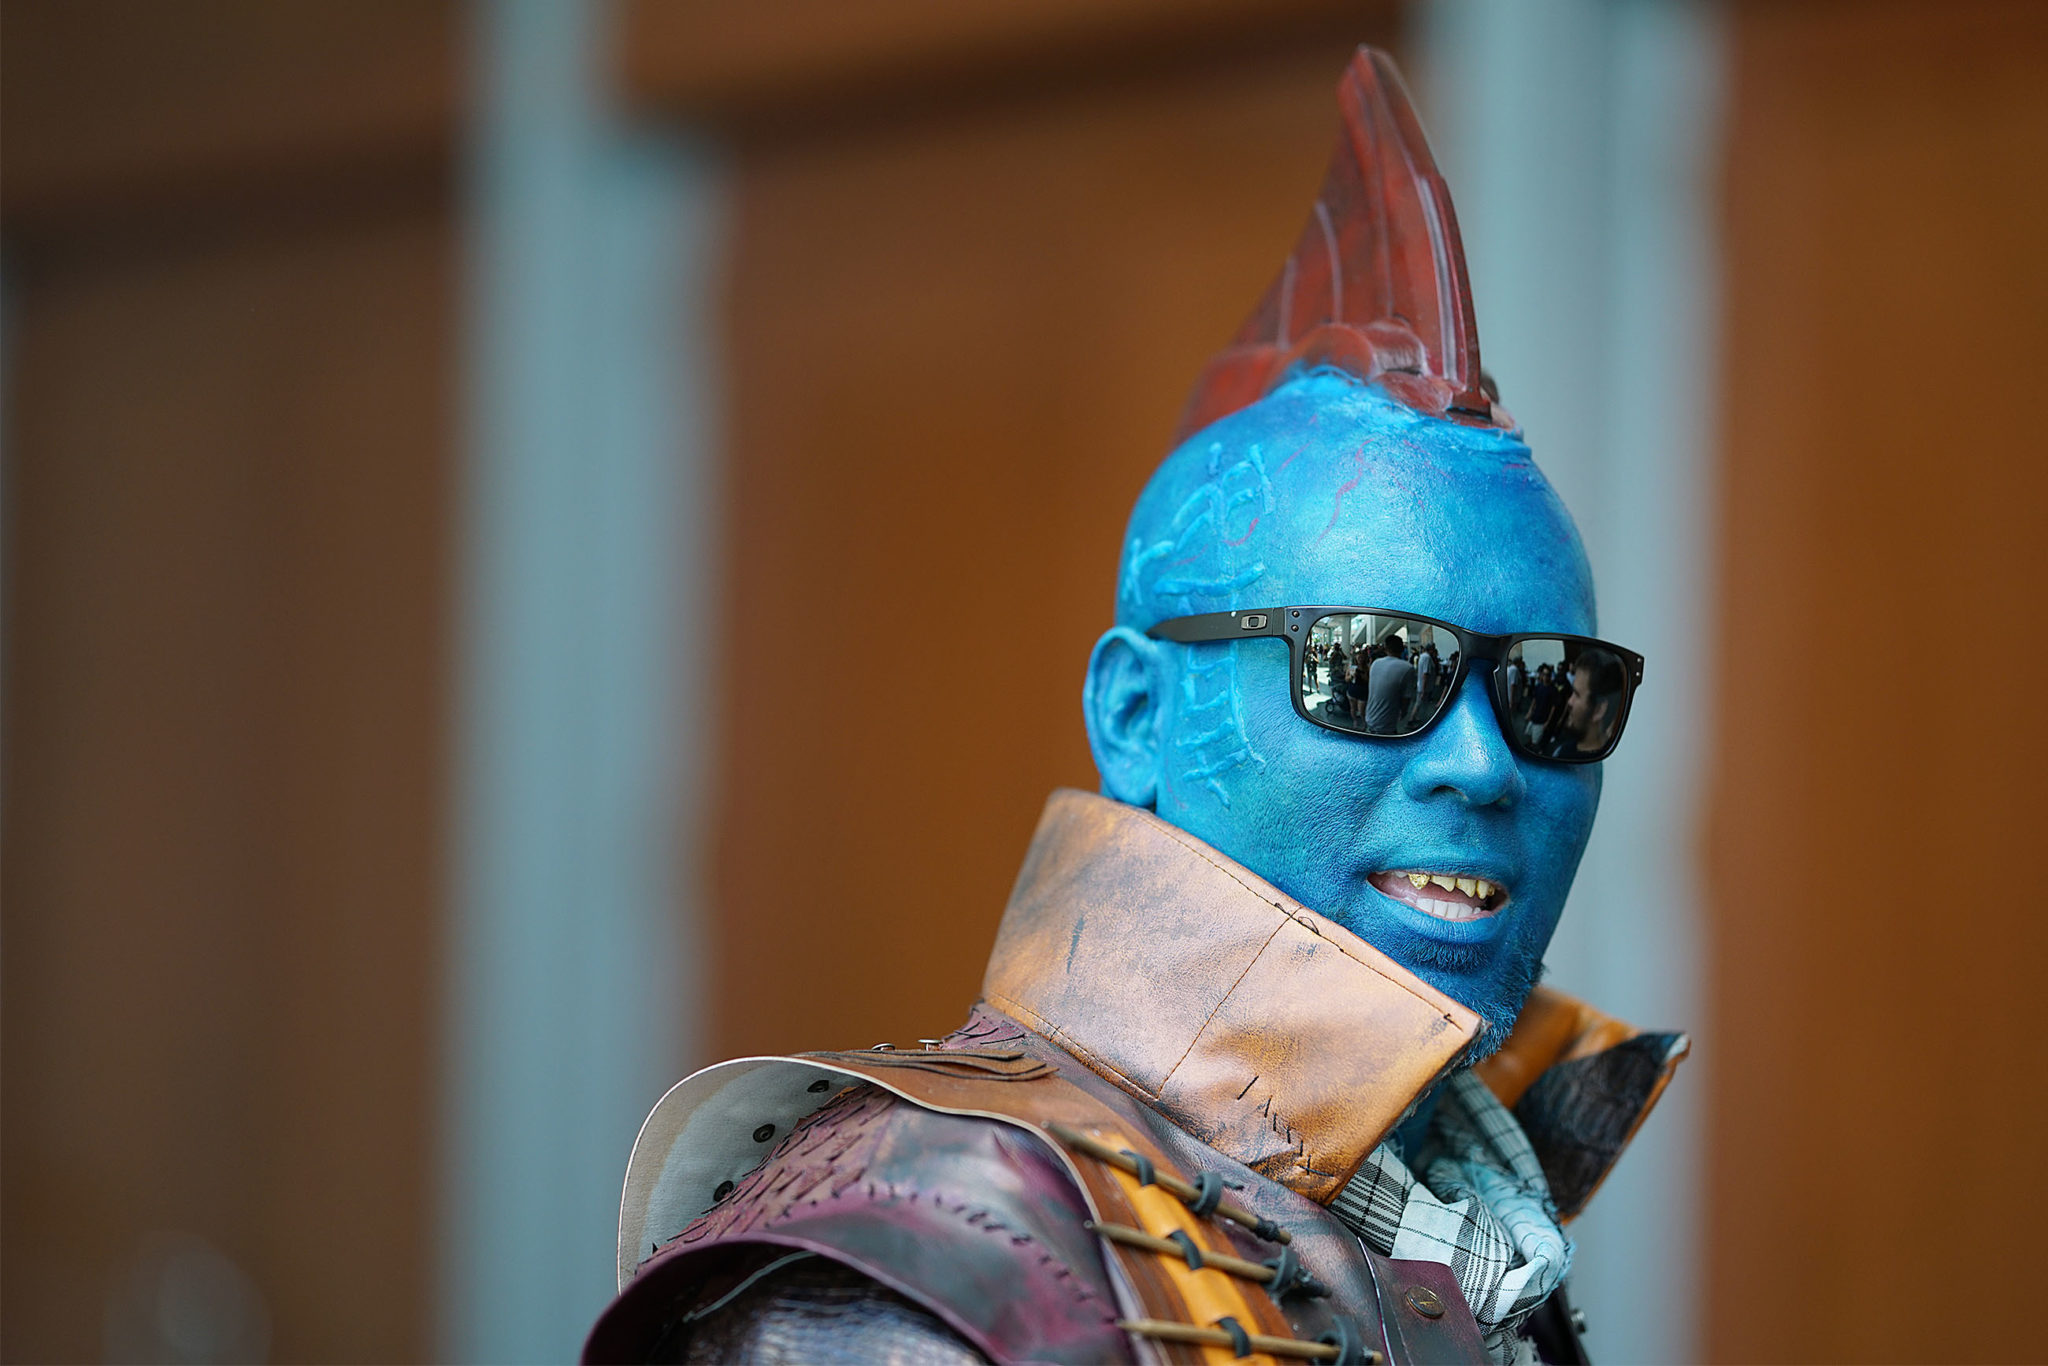 <p>Kamakani De Dely as the blue hero Yondu from the &#8220;Guardians of the Galaxy&#8221; movie series was a big hit at the convention.</p>